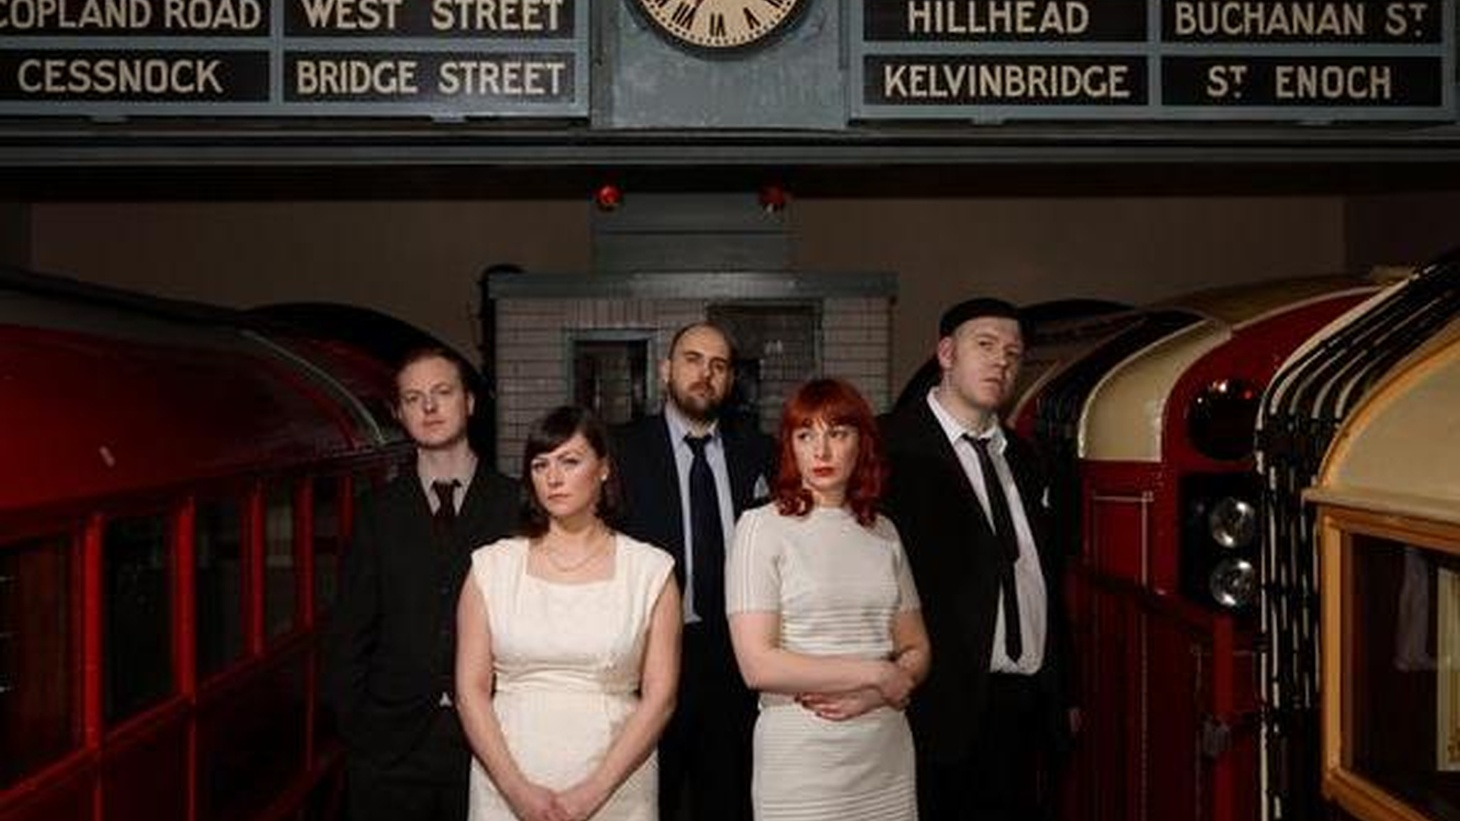 Scotland-based Camera Obscura perform songs from their uplifting release My Maudlin Career on Morning Becomes Eclectic at 11:15am.